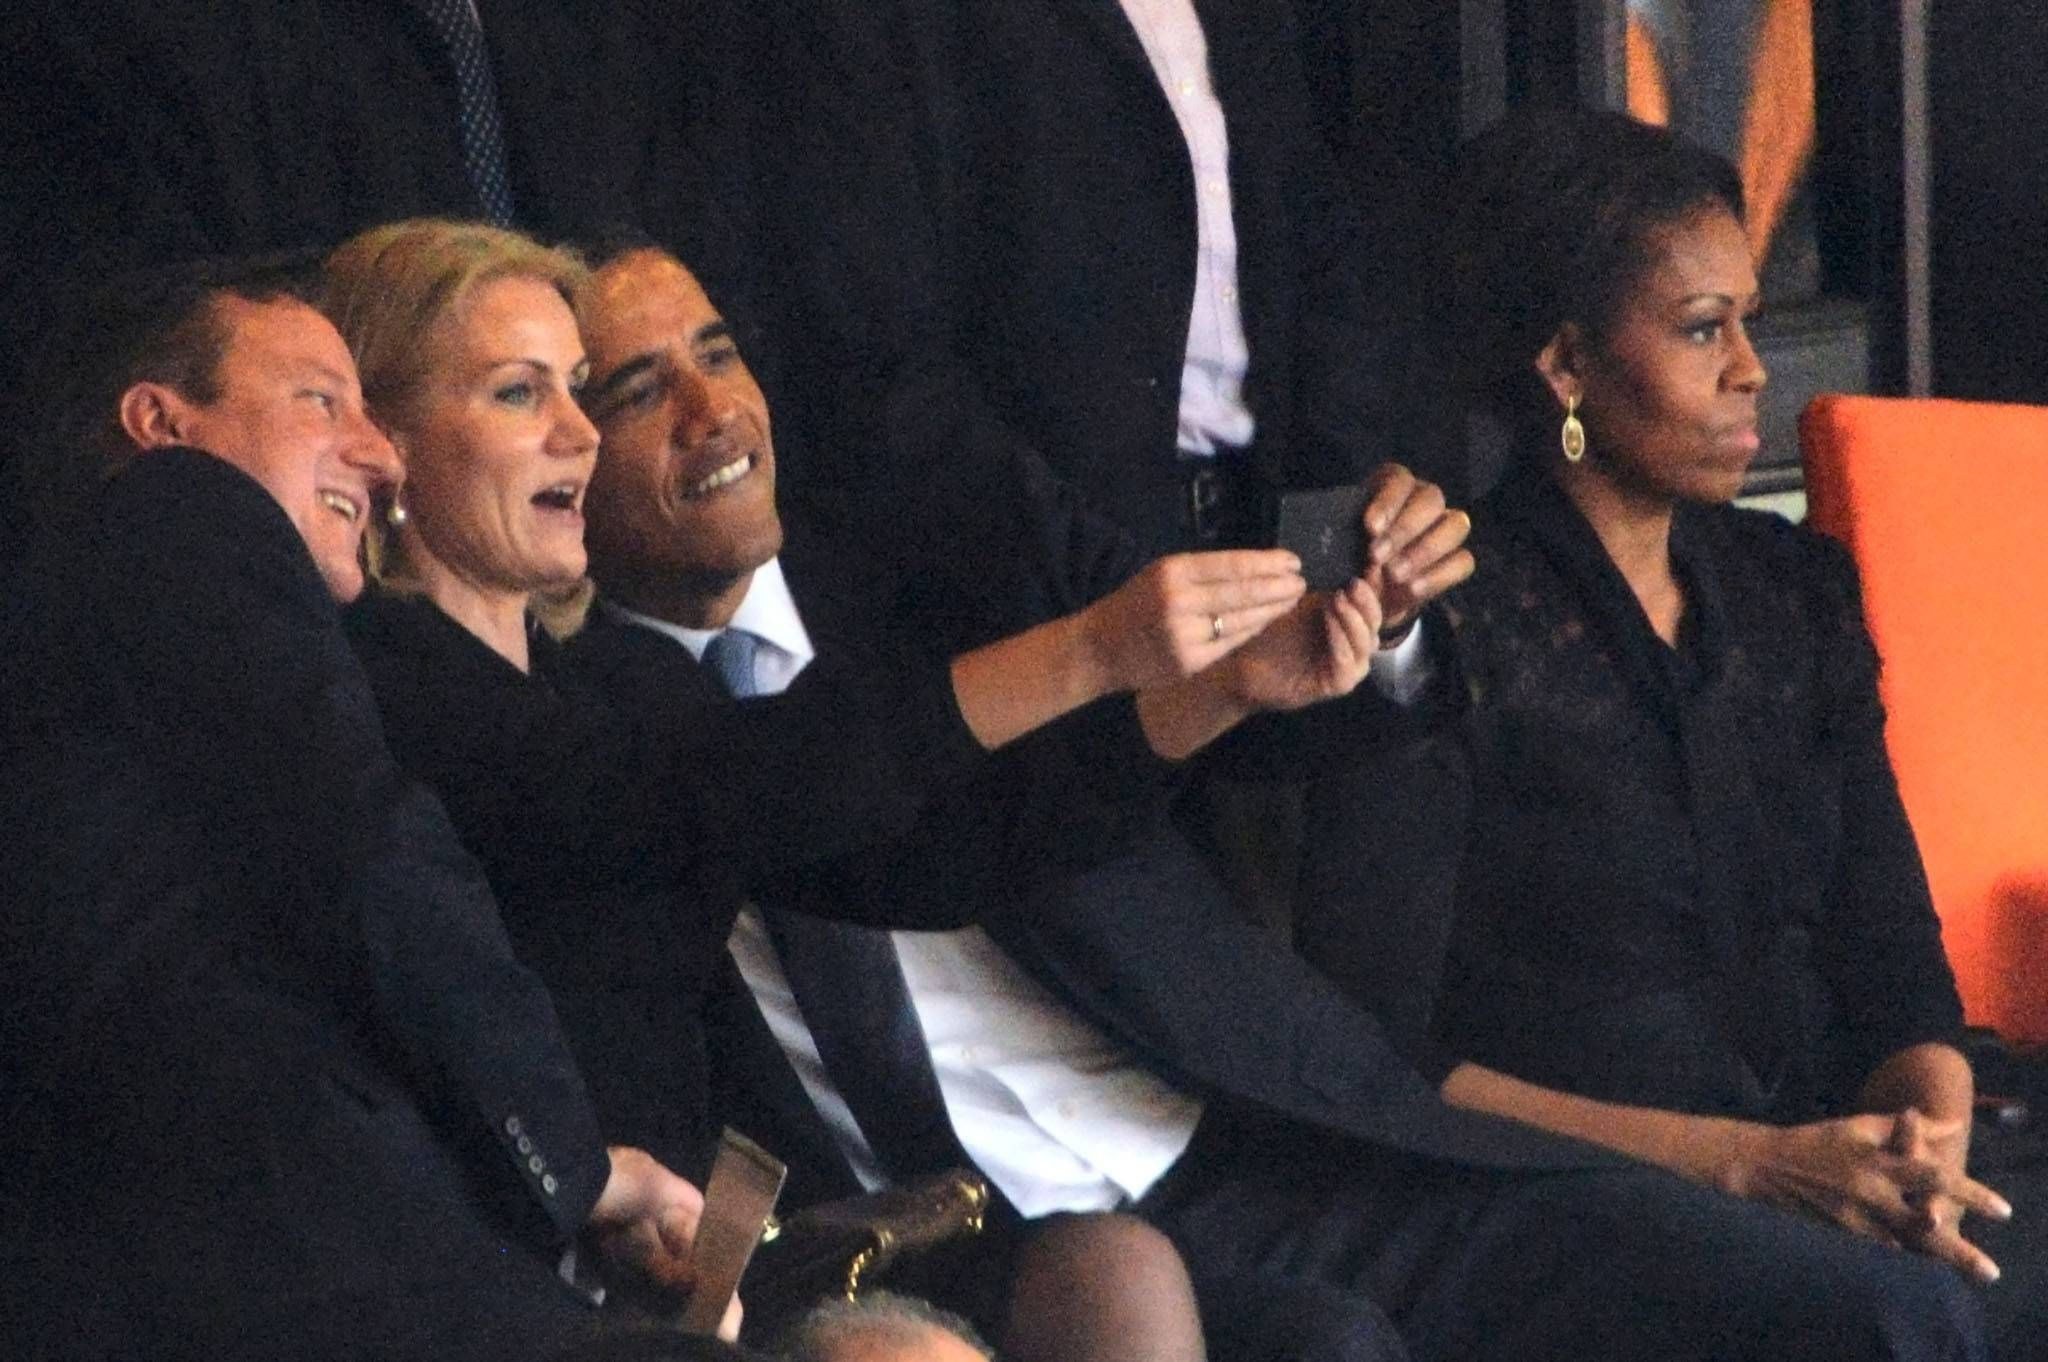 Obama and Cameron cosy up for 'inappropriate' selfie with Danish PM at Nelson Mandela's memorial service